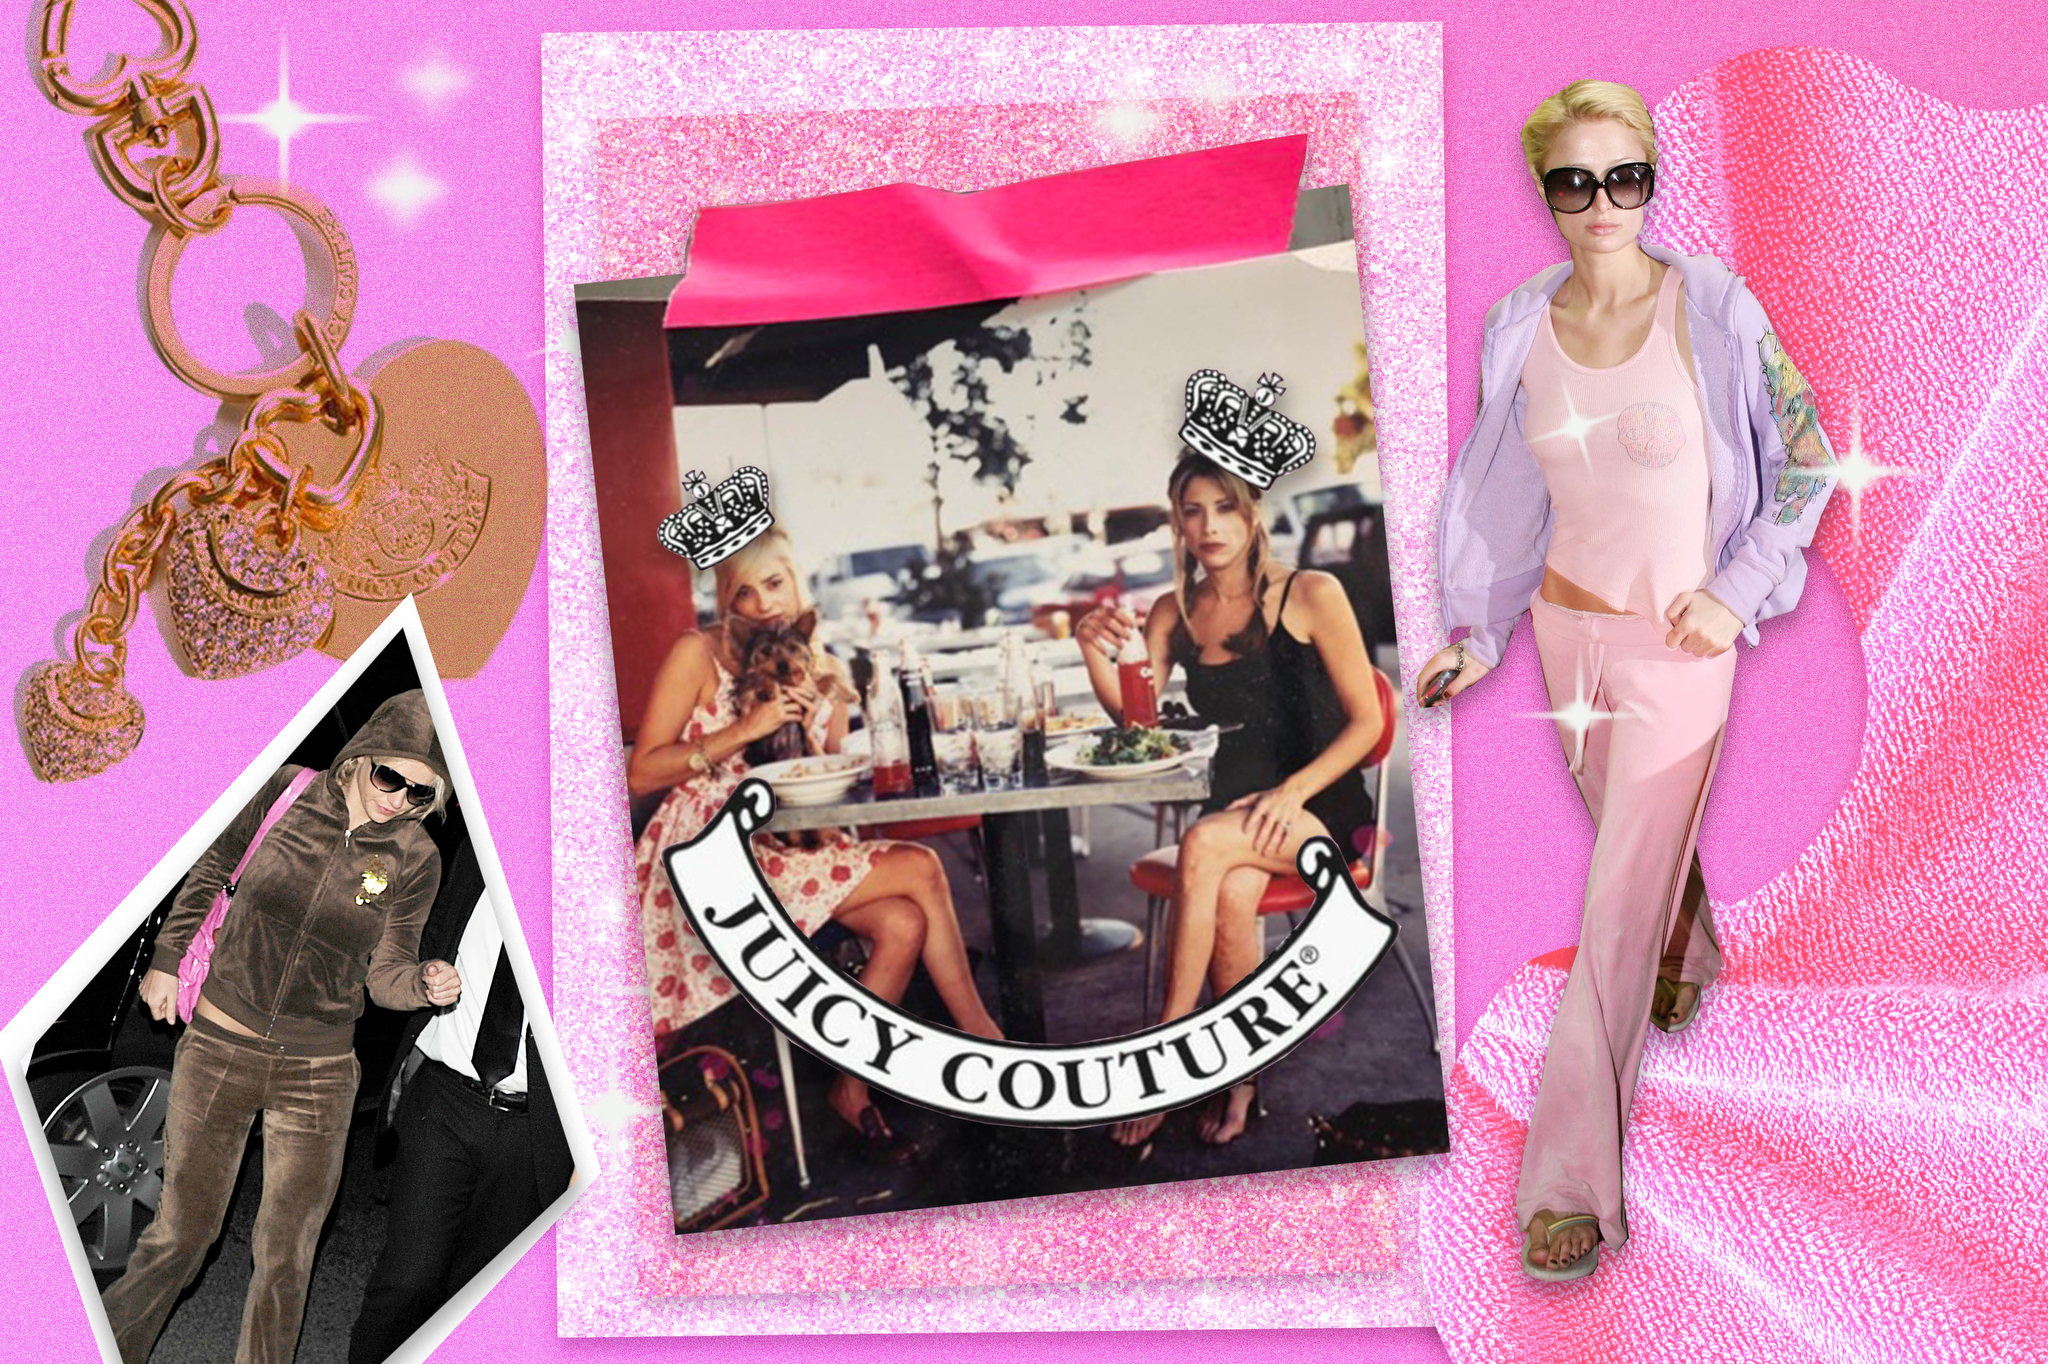 Juicy Couture's founders Gela Nash-Taylor and Pamela Skaist-Levy speak with WWD to mark the brand's 25th anniversary.